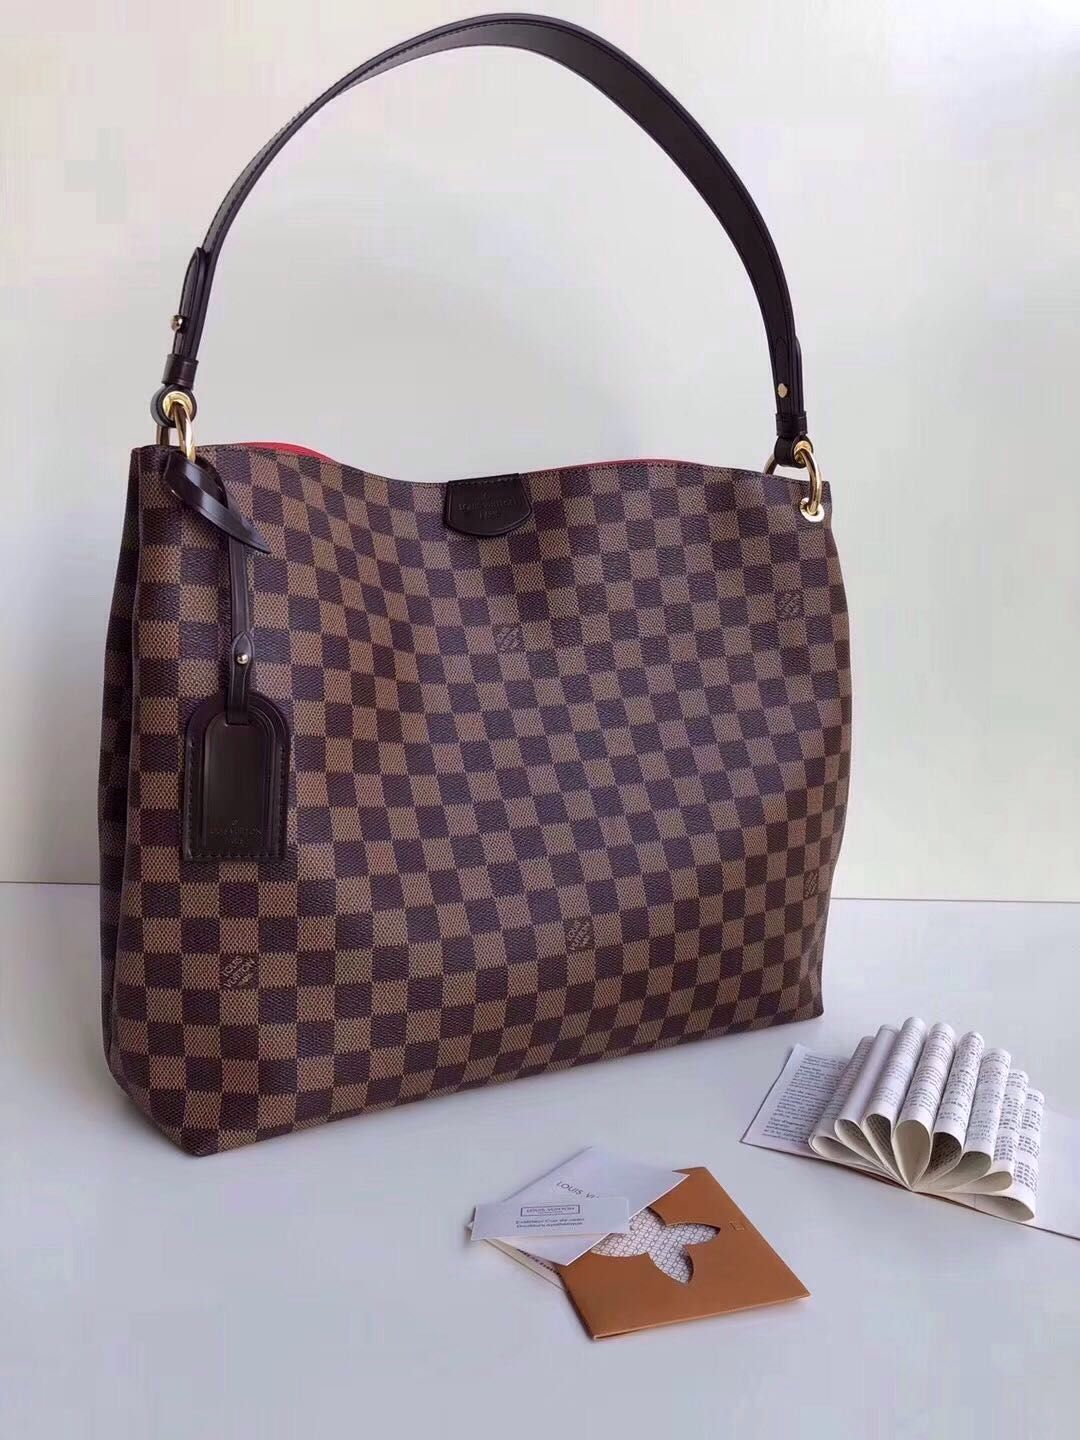 ee0611254514 My bag 😍 so in love with it! Louis Vuitton Graceful MM in Damier ...